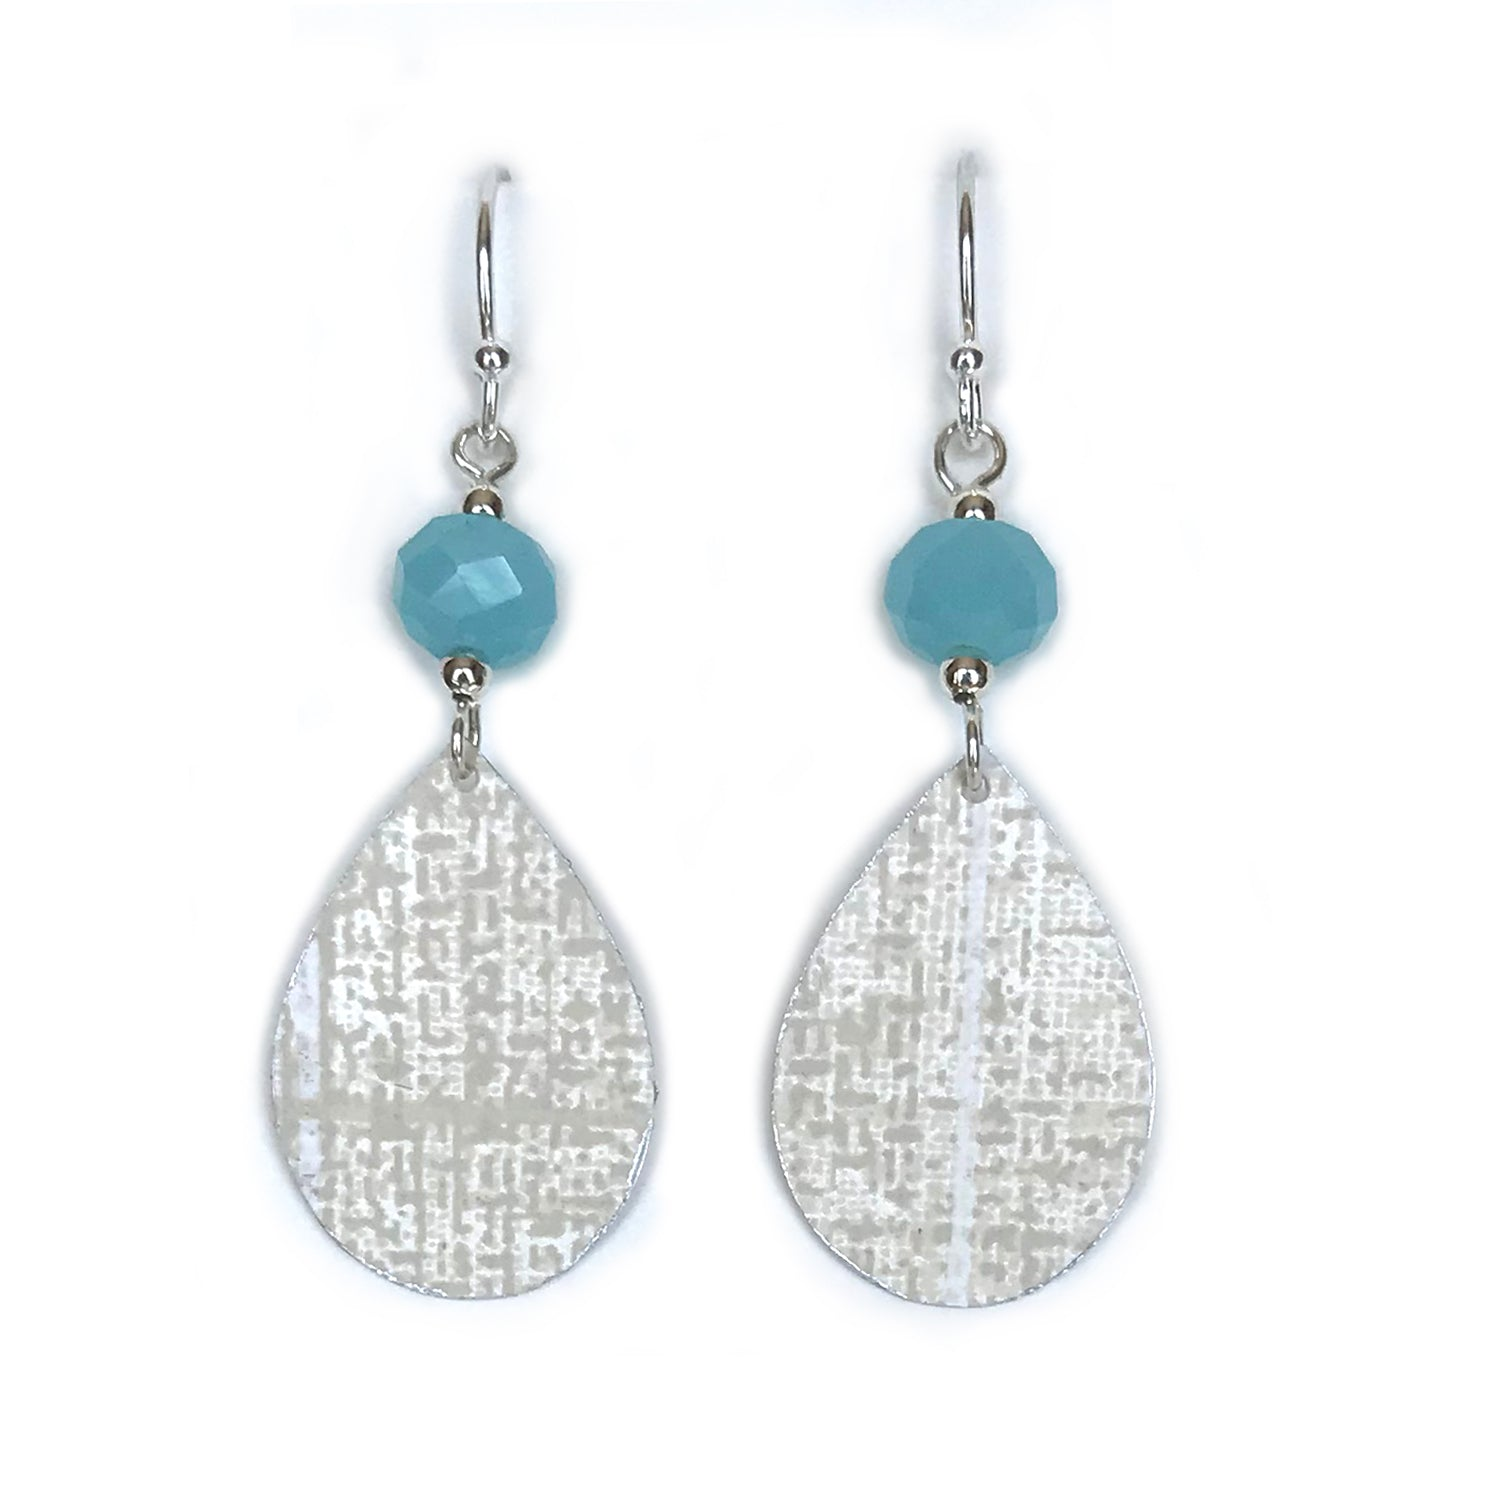 Pearly White and Gray Teardrops with Aqua Blue Faceted Beads